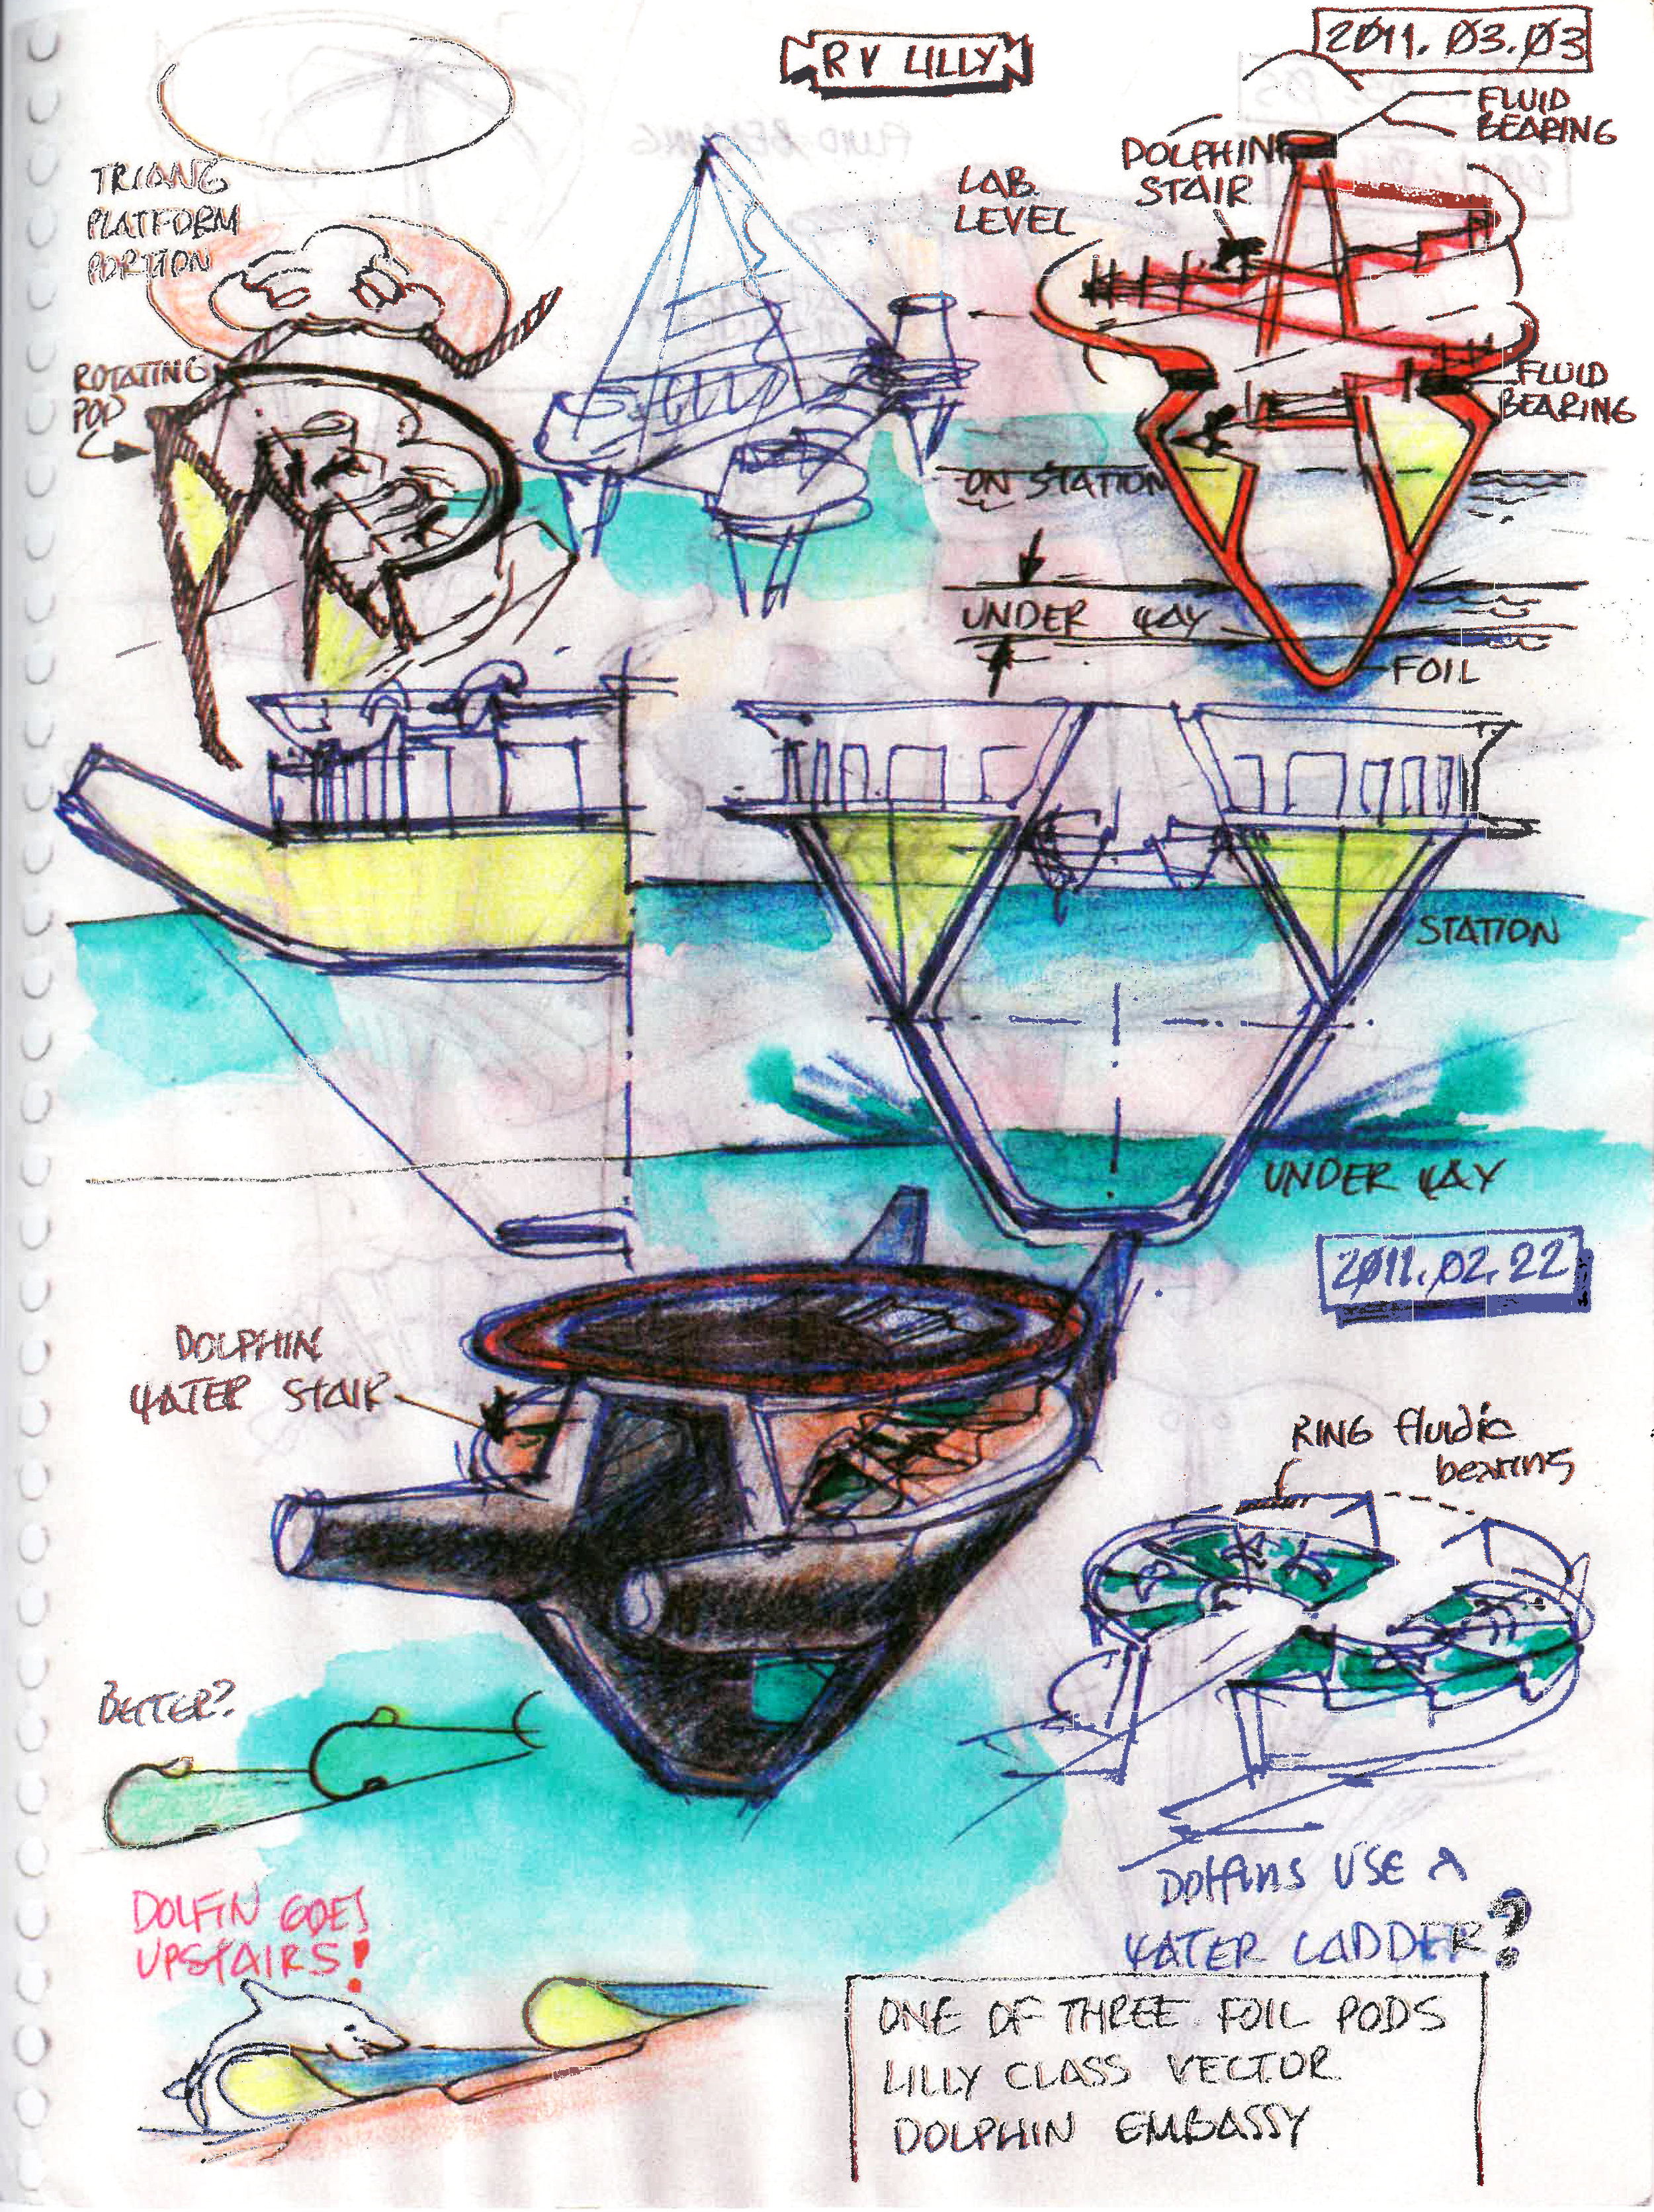 Fig. 4. Dolphin Spiral Stair sketches by Embassy designer Curtis Schreier. Curtis Schreier, RV Lilly, 2011.03.05. 2011, pen and colored pencil on paper, 8x10in. Personal sketchbook of Curtis Schreier.